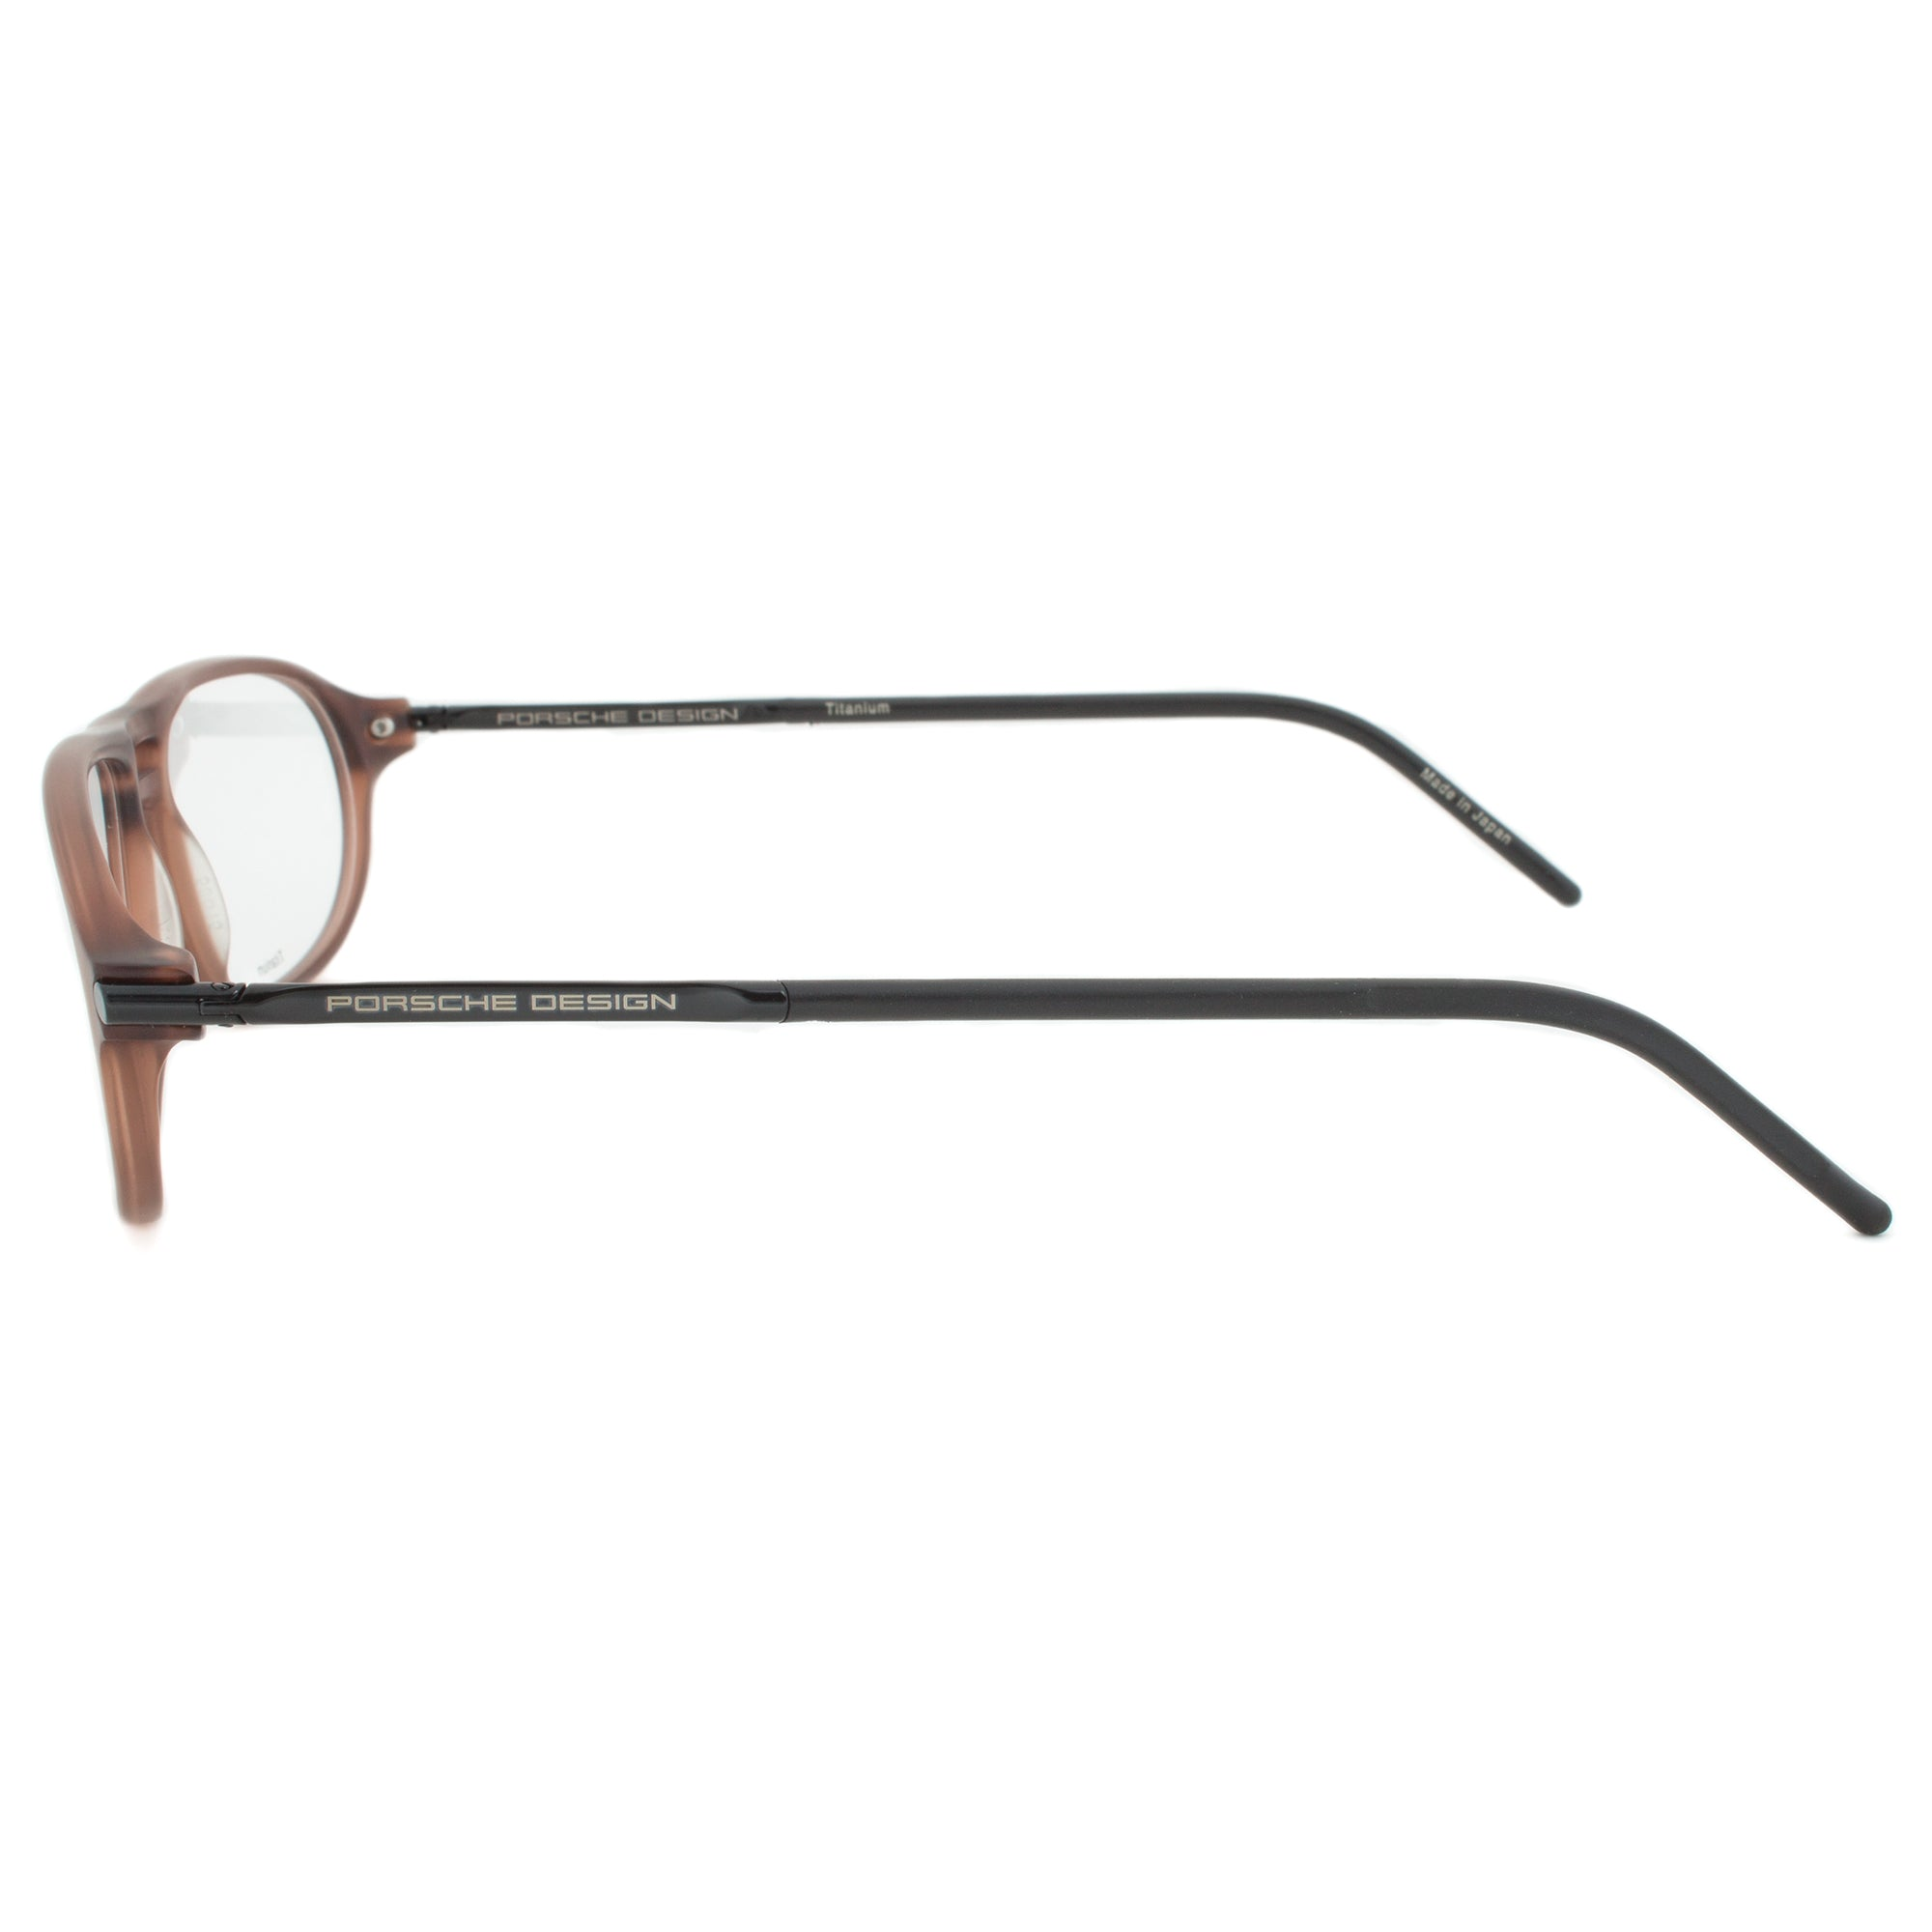 Porsche Design P8138 B Oval | Caramel Brown| Eyeglass Frames